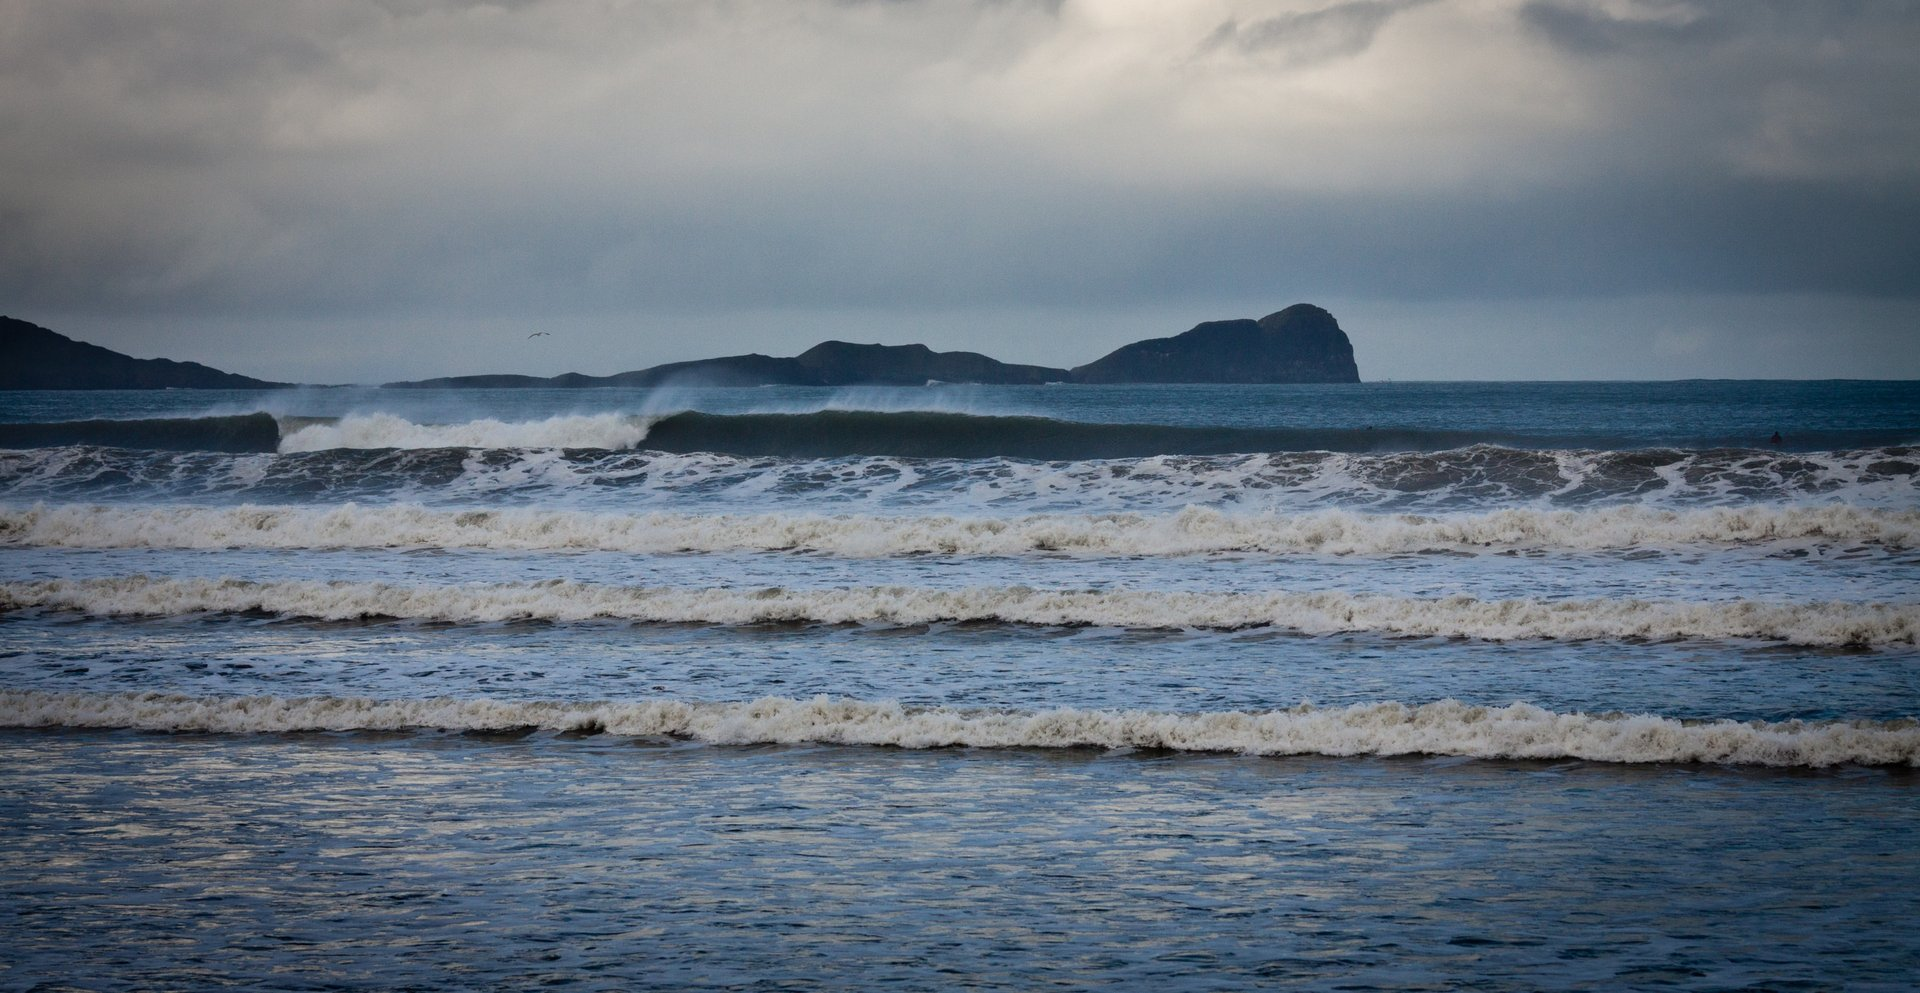 Waverider12's photo of Llangennith / Rhossili